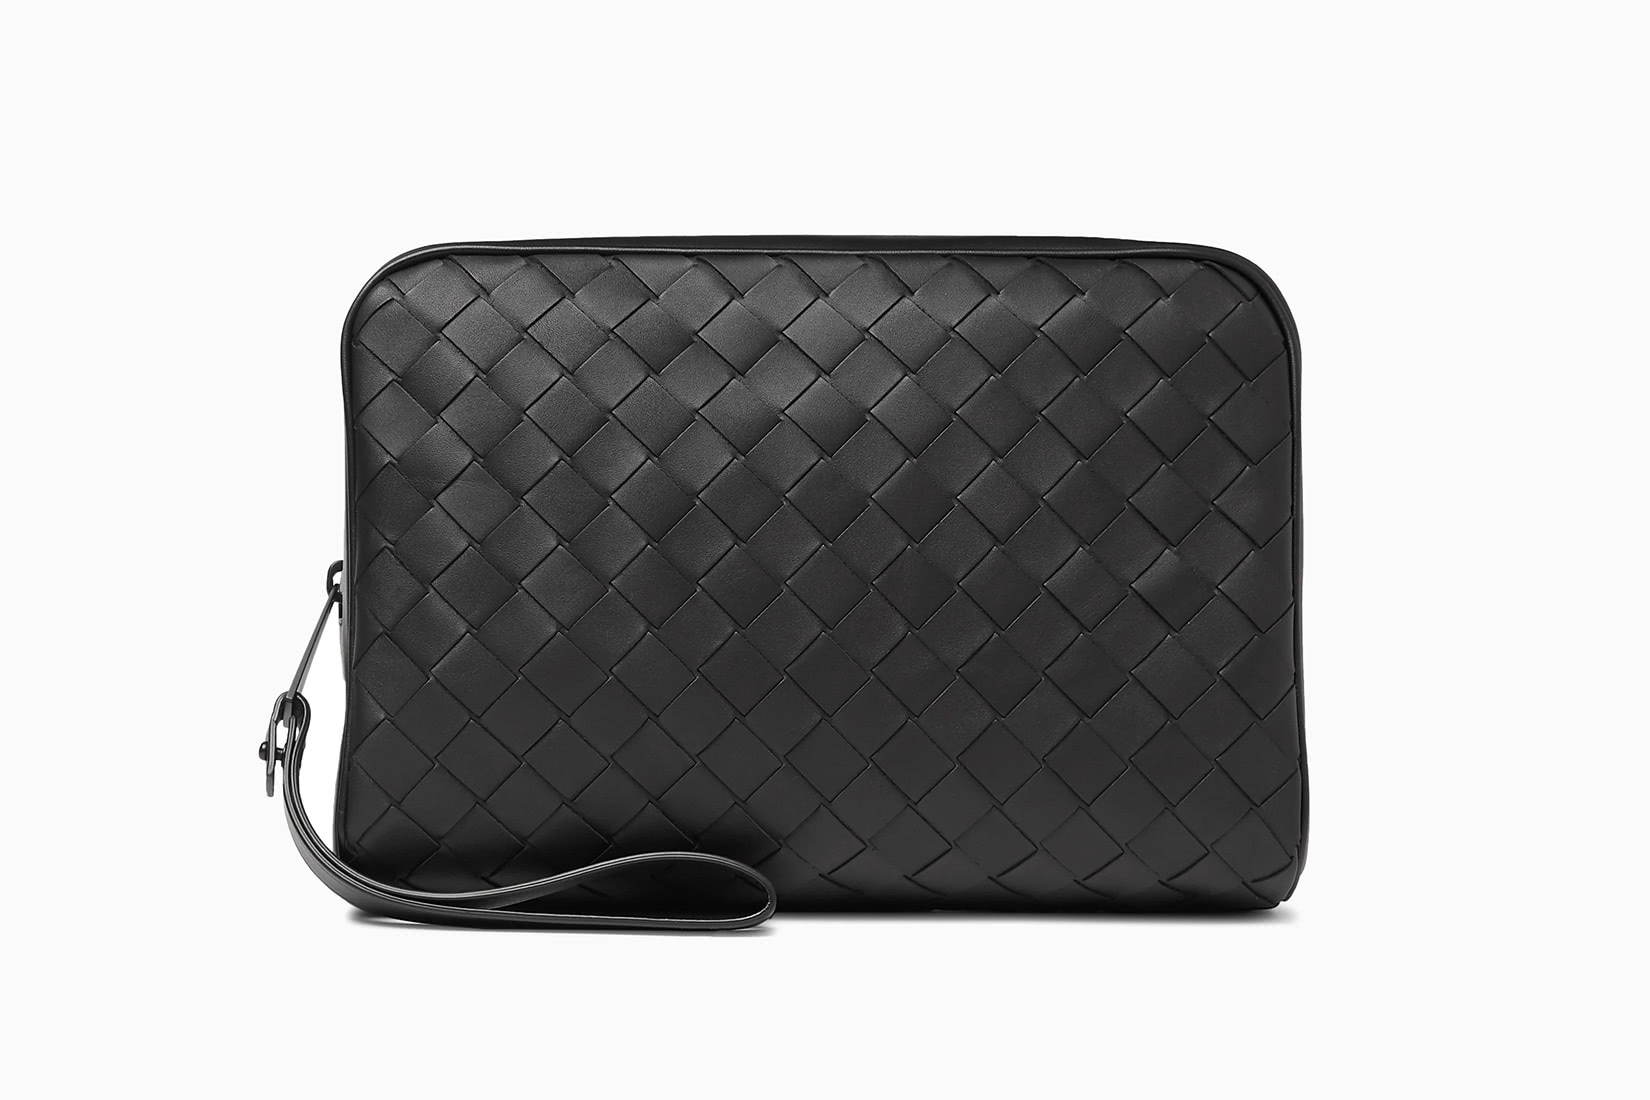 best dopp kit men expensive bottega veneta review - Luxe Digital